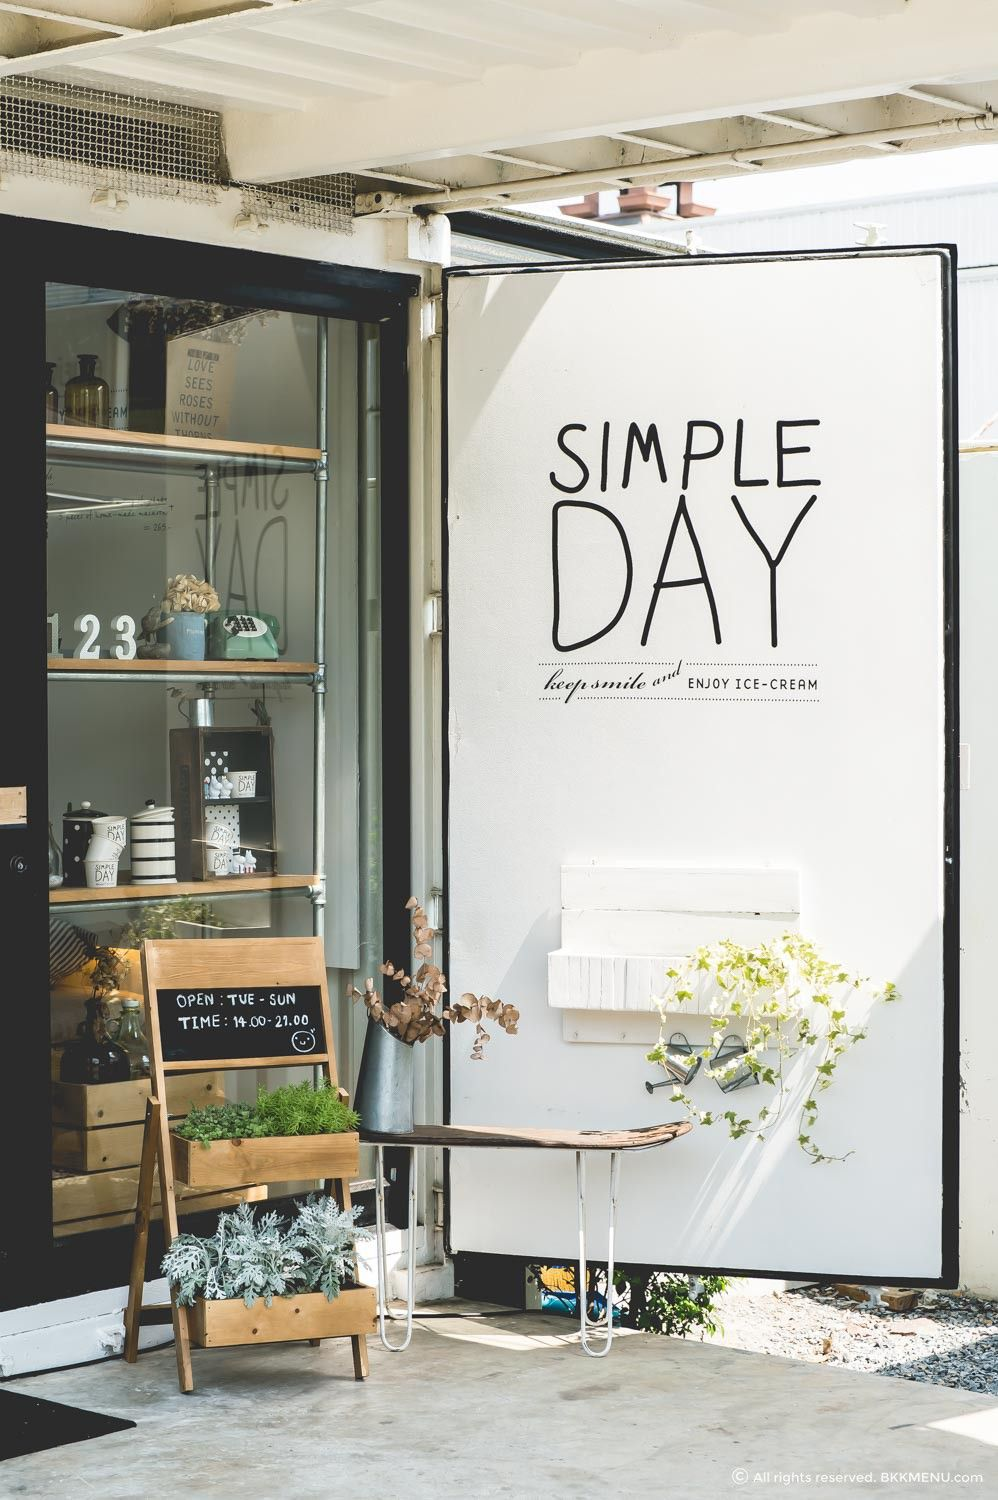 Beautiful Plants Incorporated Into The Sign       Simple Day Design Inspirations